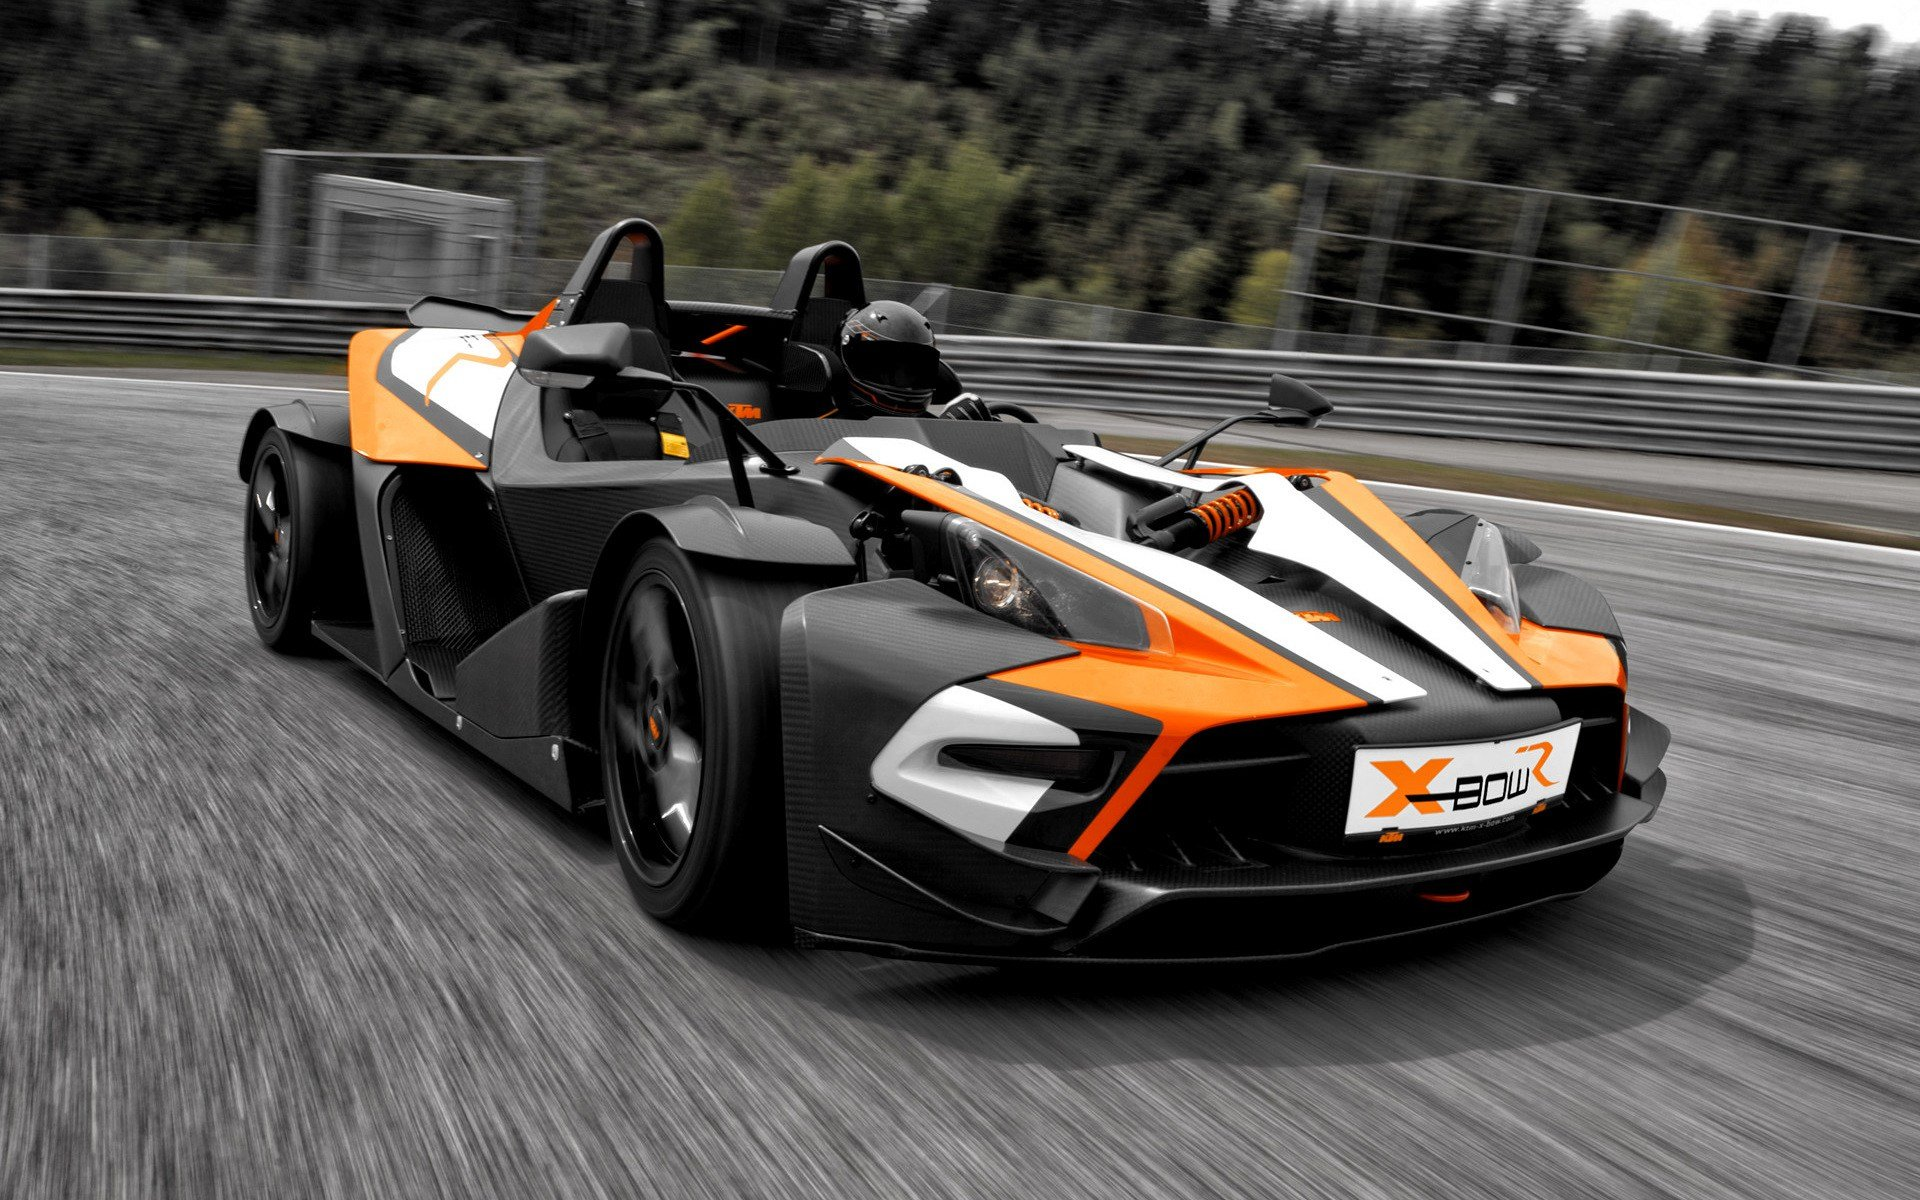 New Ktm X Bow R 2011 Wallpapers And Hd Images Car Pixel On This Month